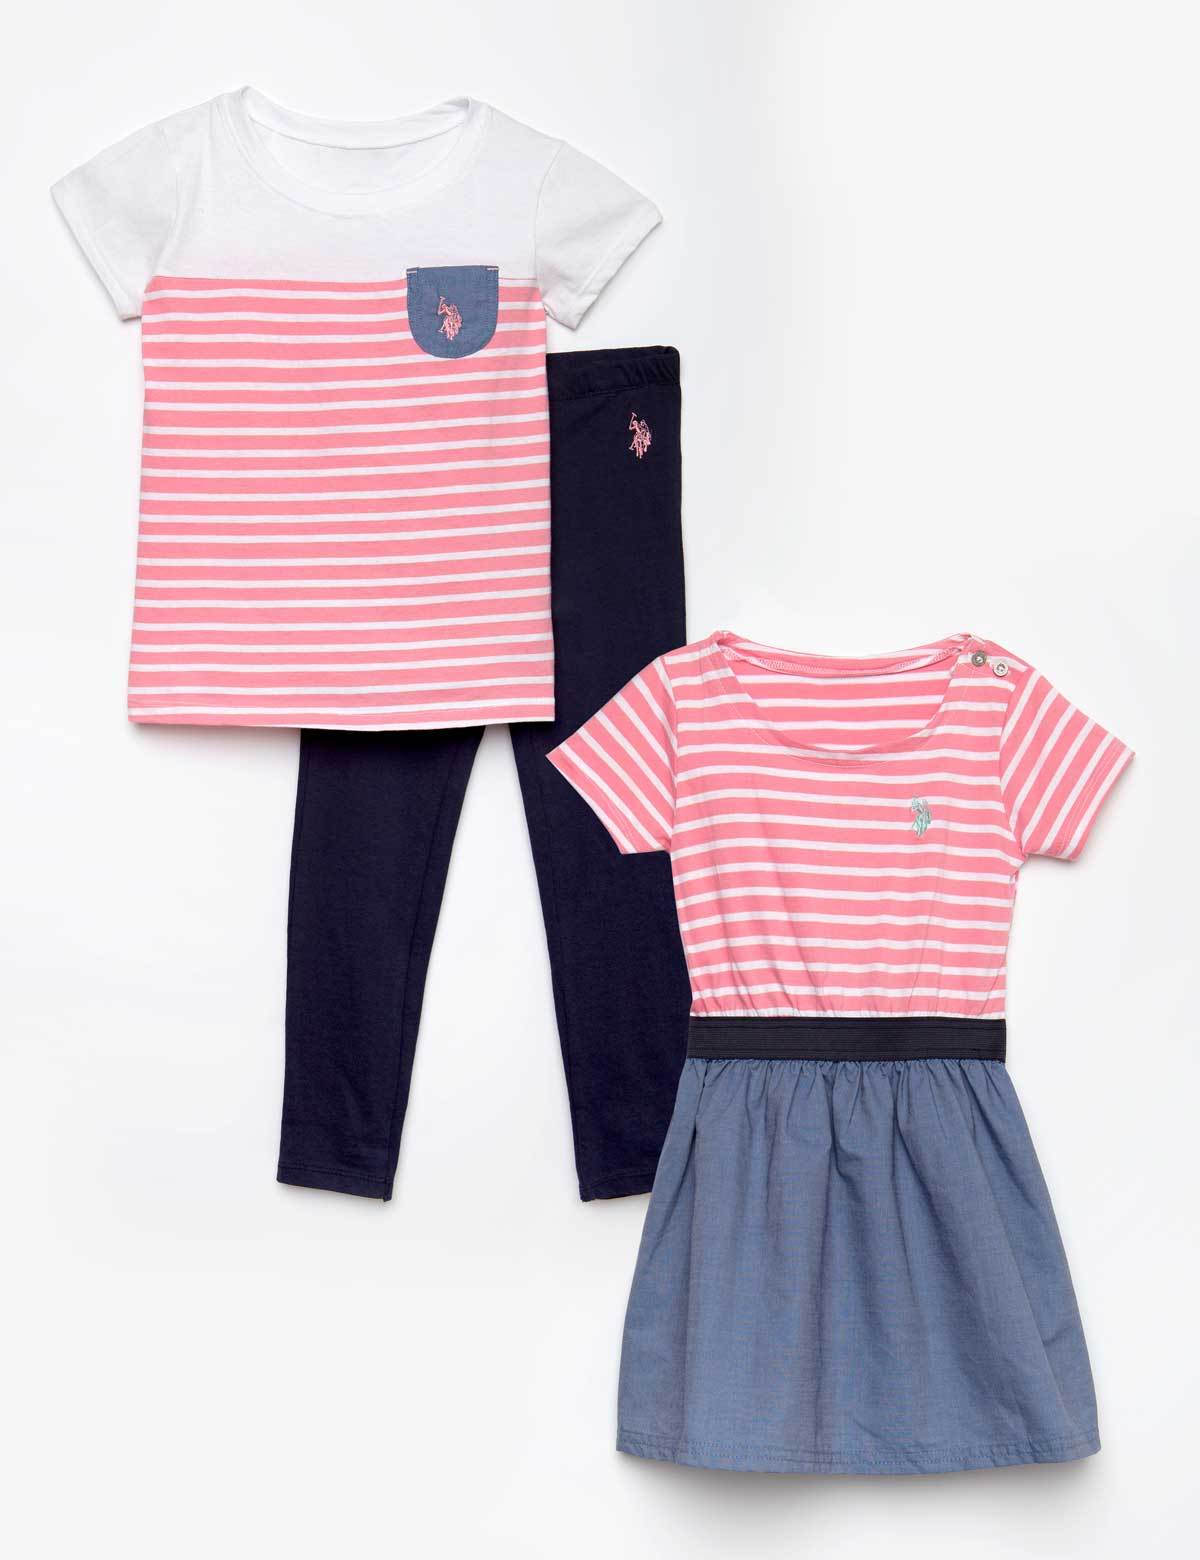 U.S Girls Fashion Top and Legging Set Polo Assn